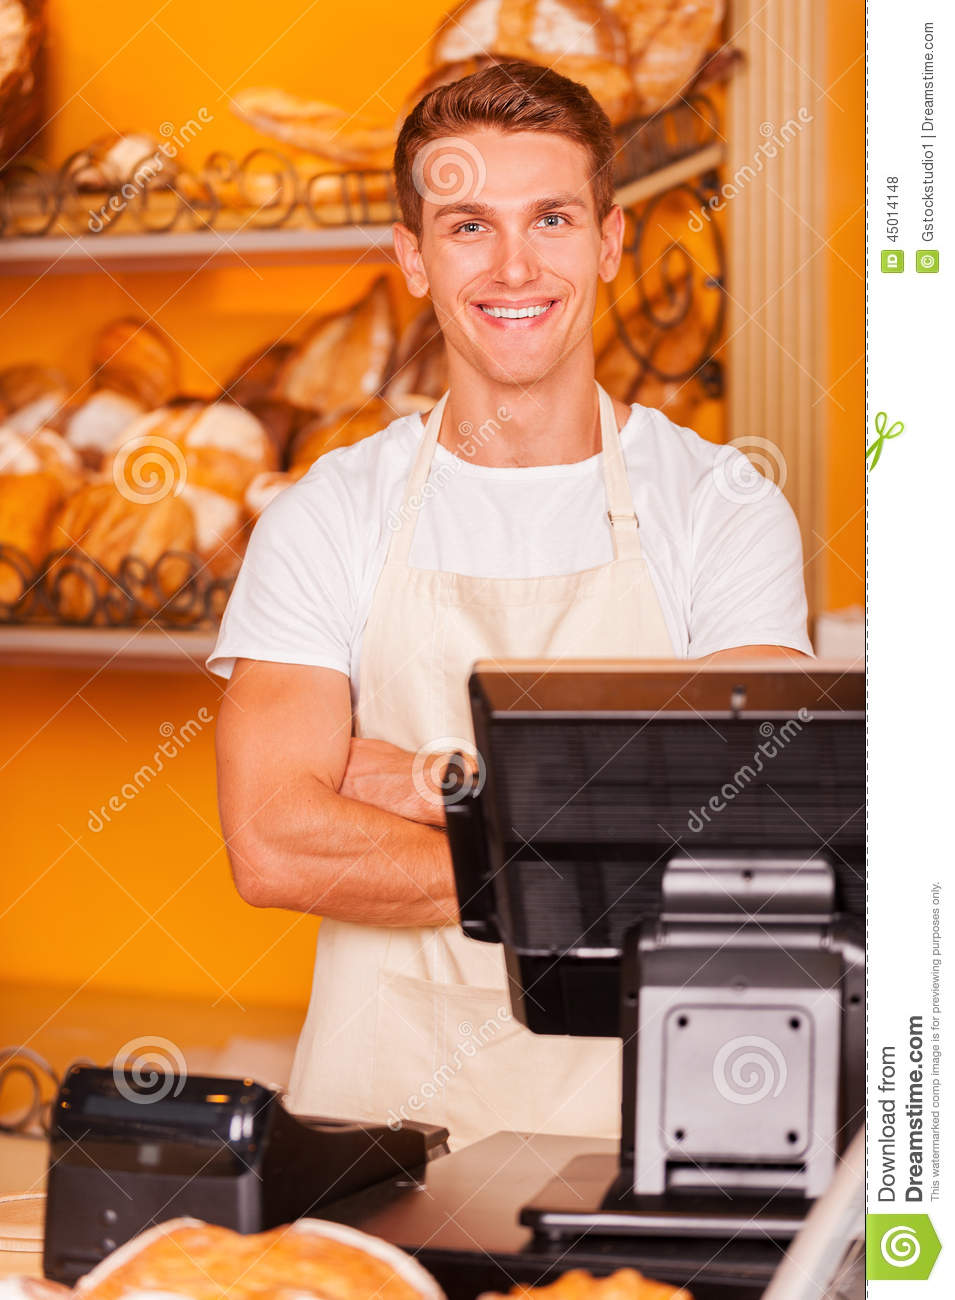 Cashier In Bakery Shop Stock Photo Image 45014148